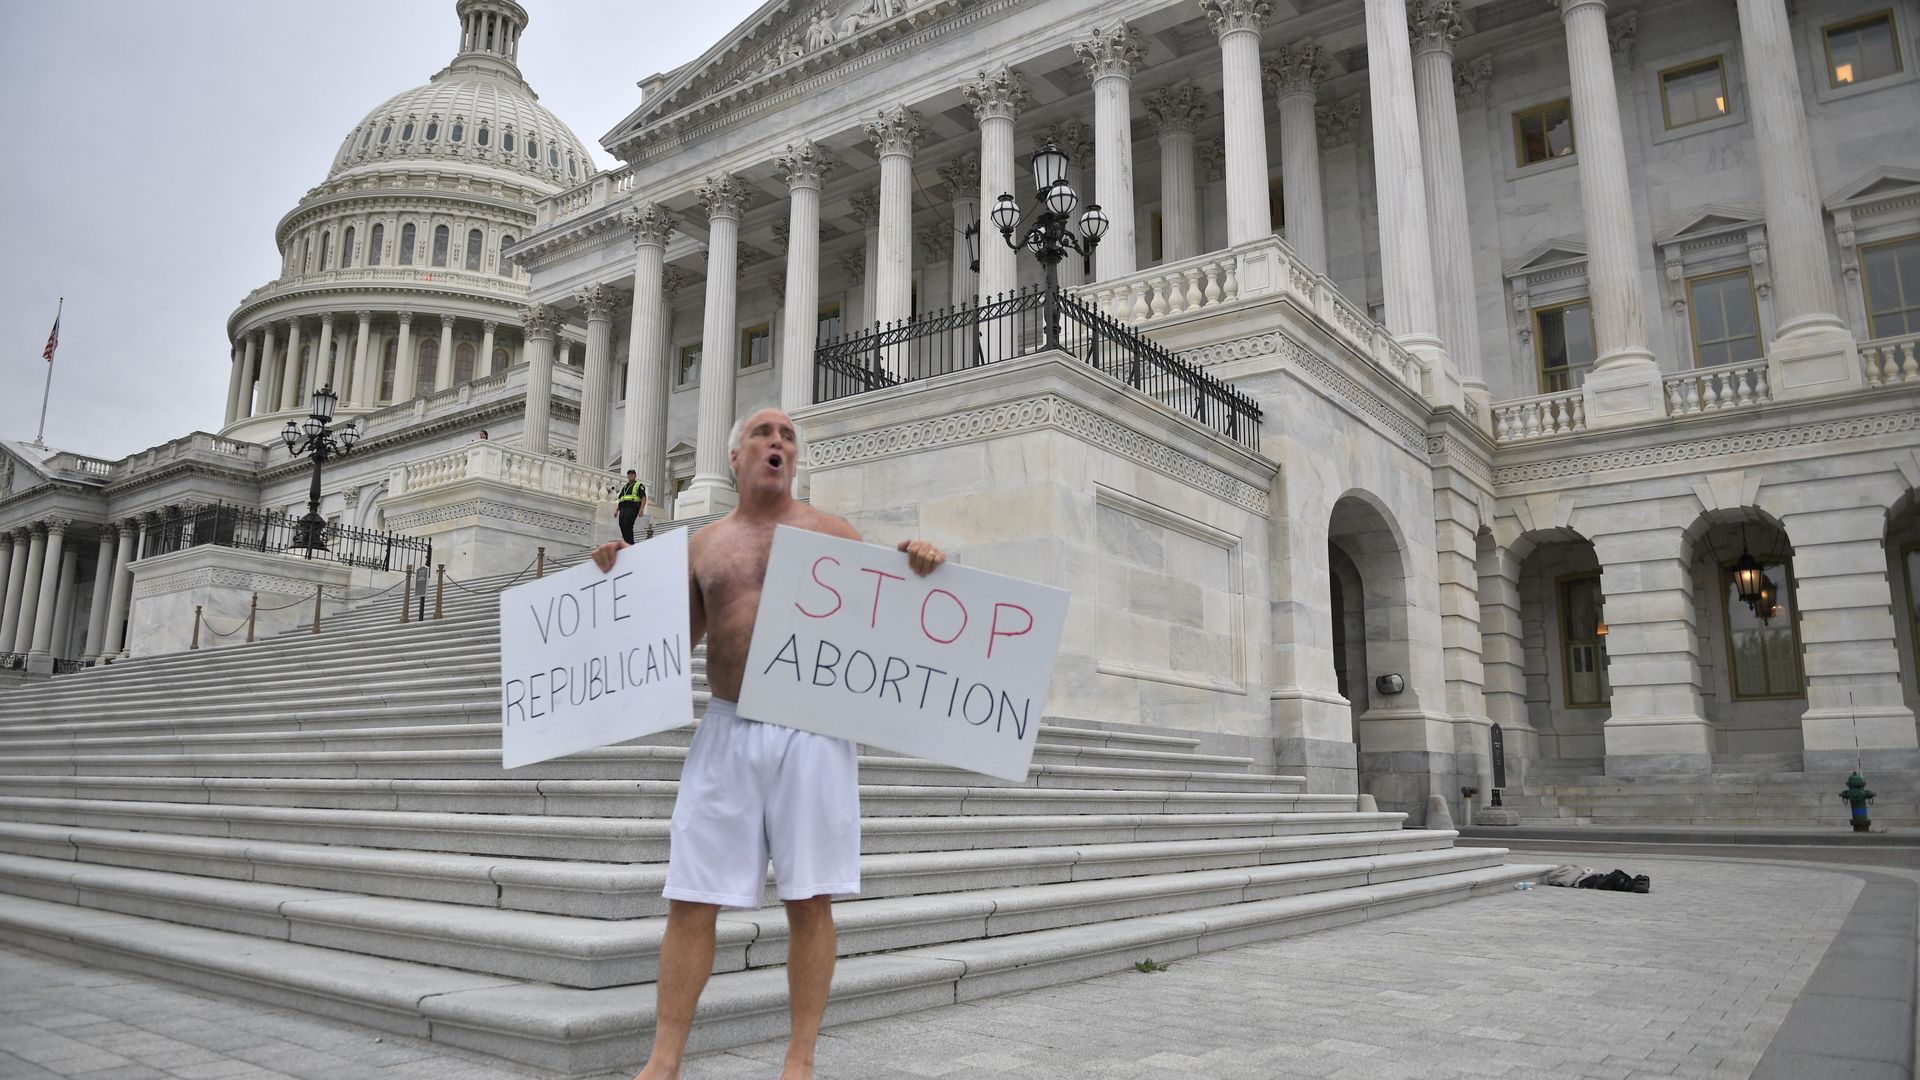 MAn protesting in front of the U.S. capitol saying stop abortion vote republican